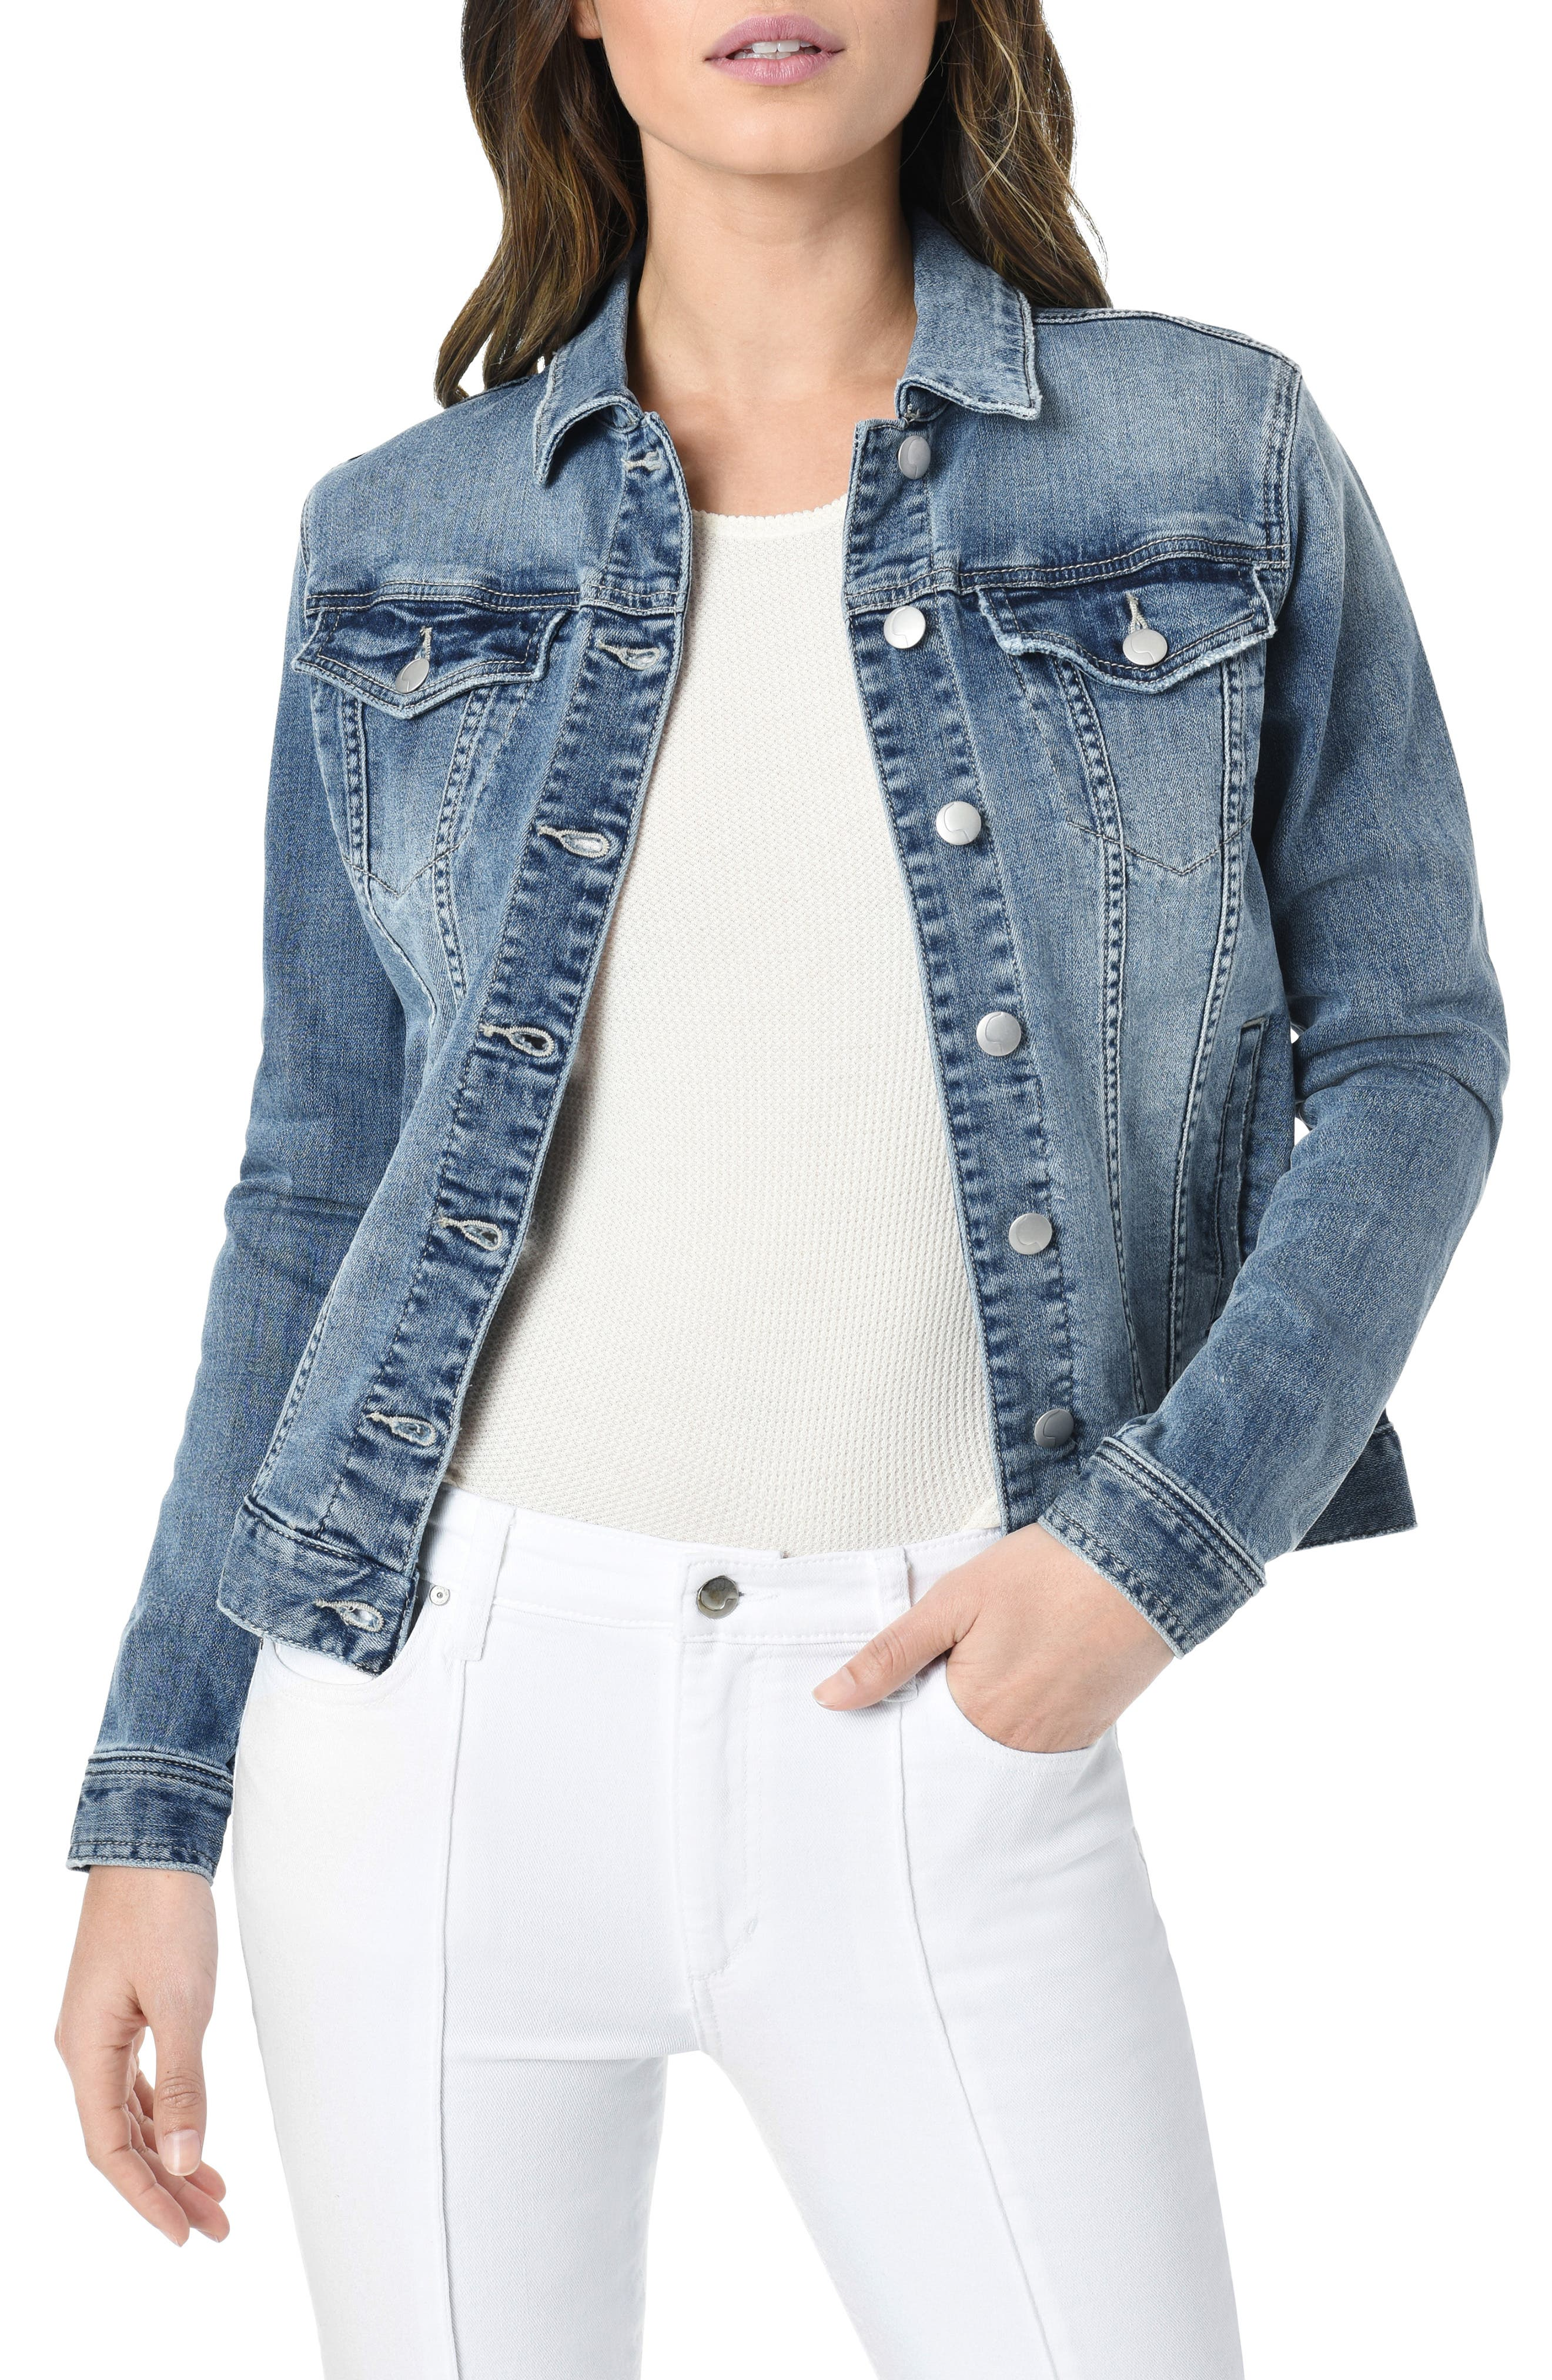 The Relaxed Denim Jacket